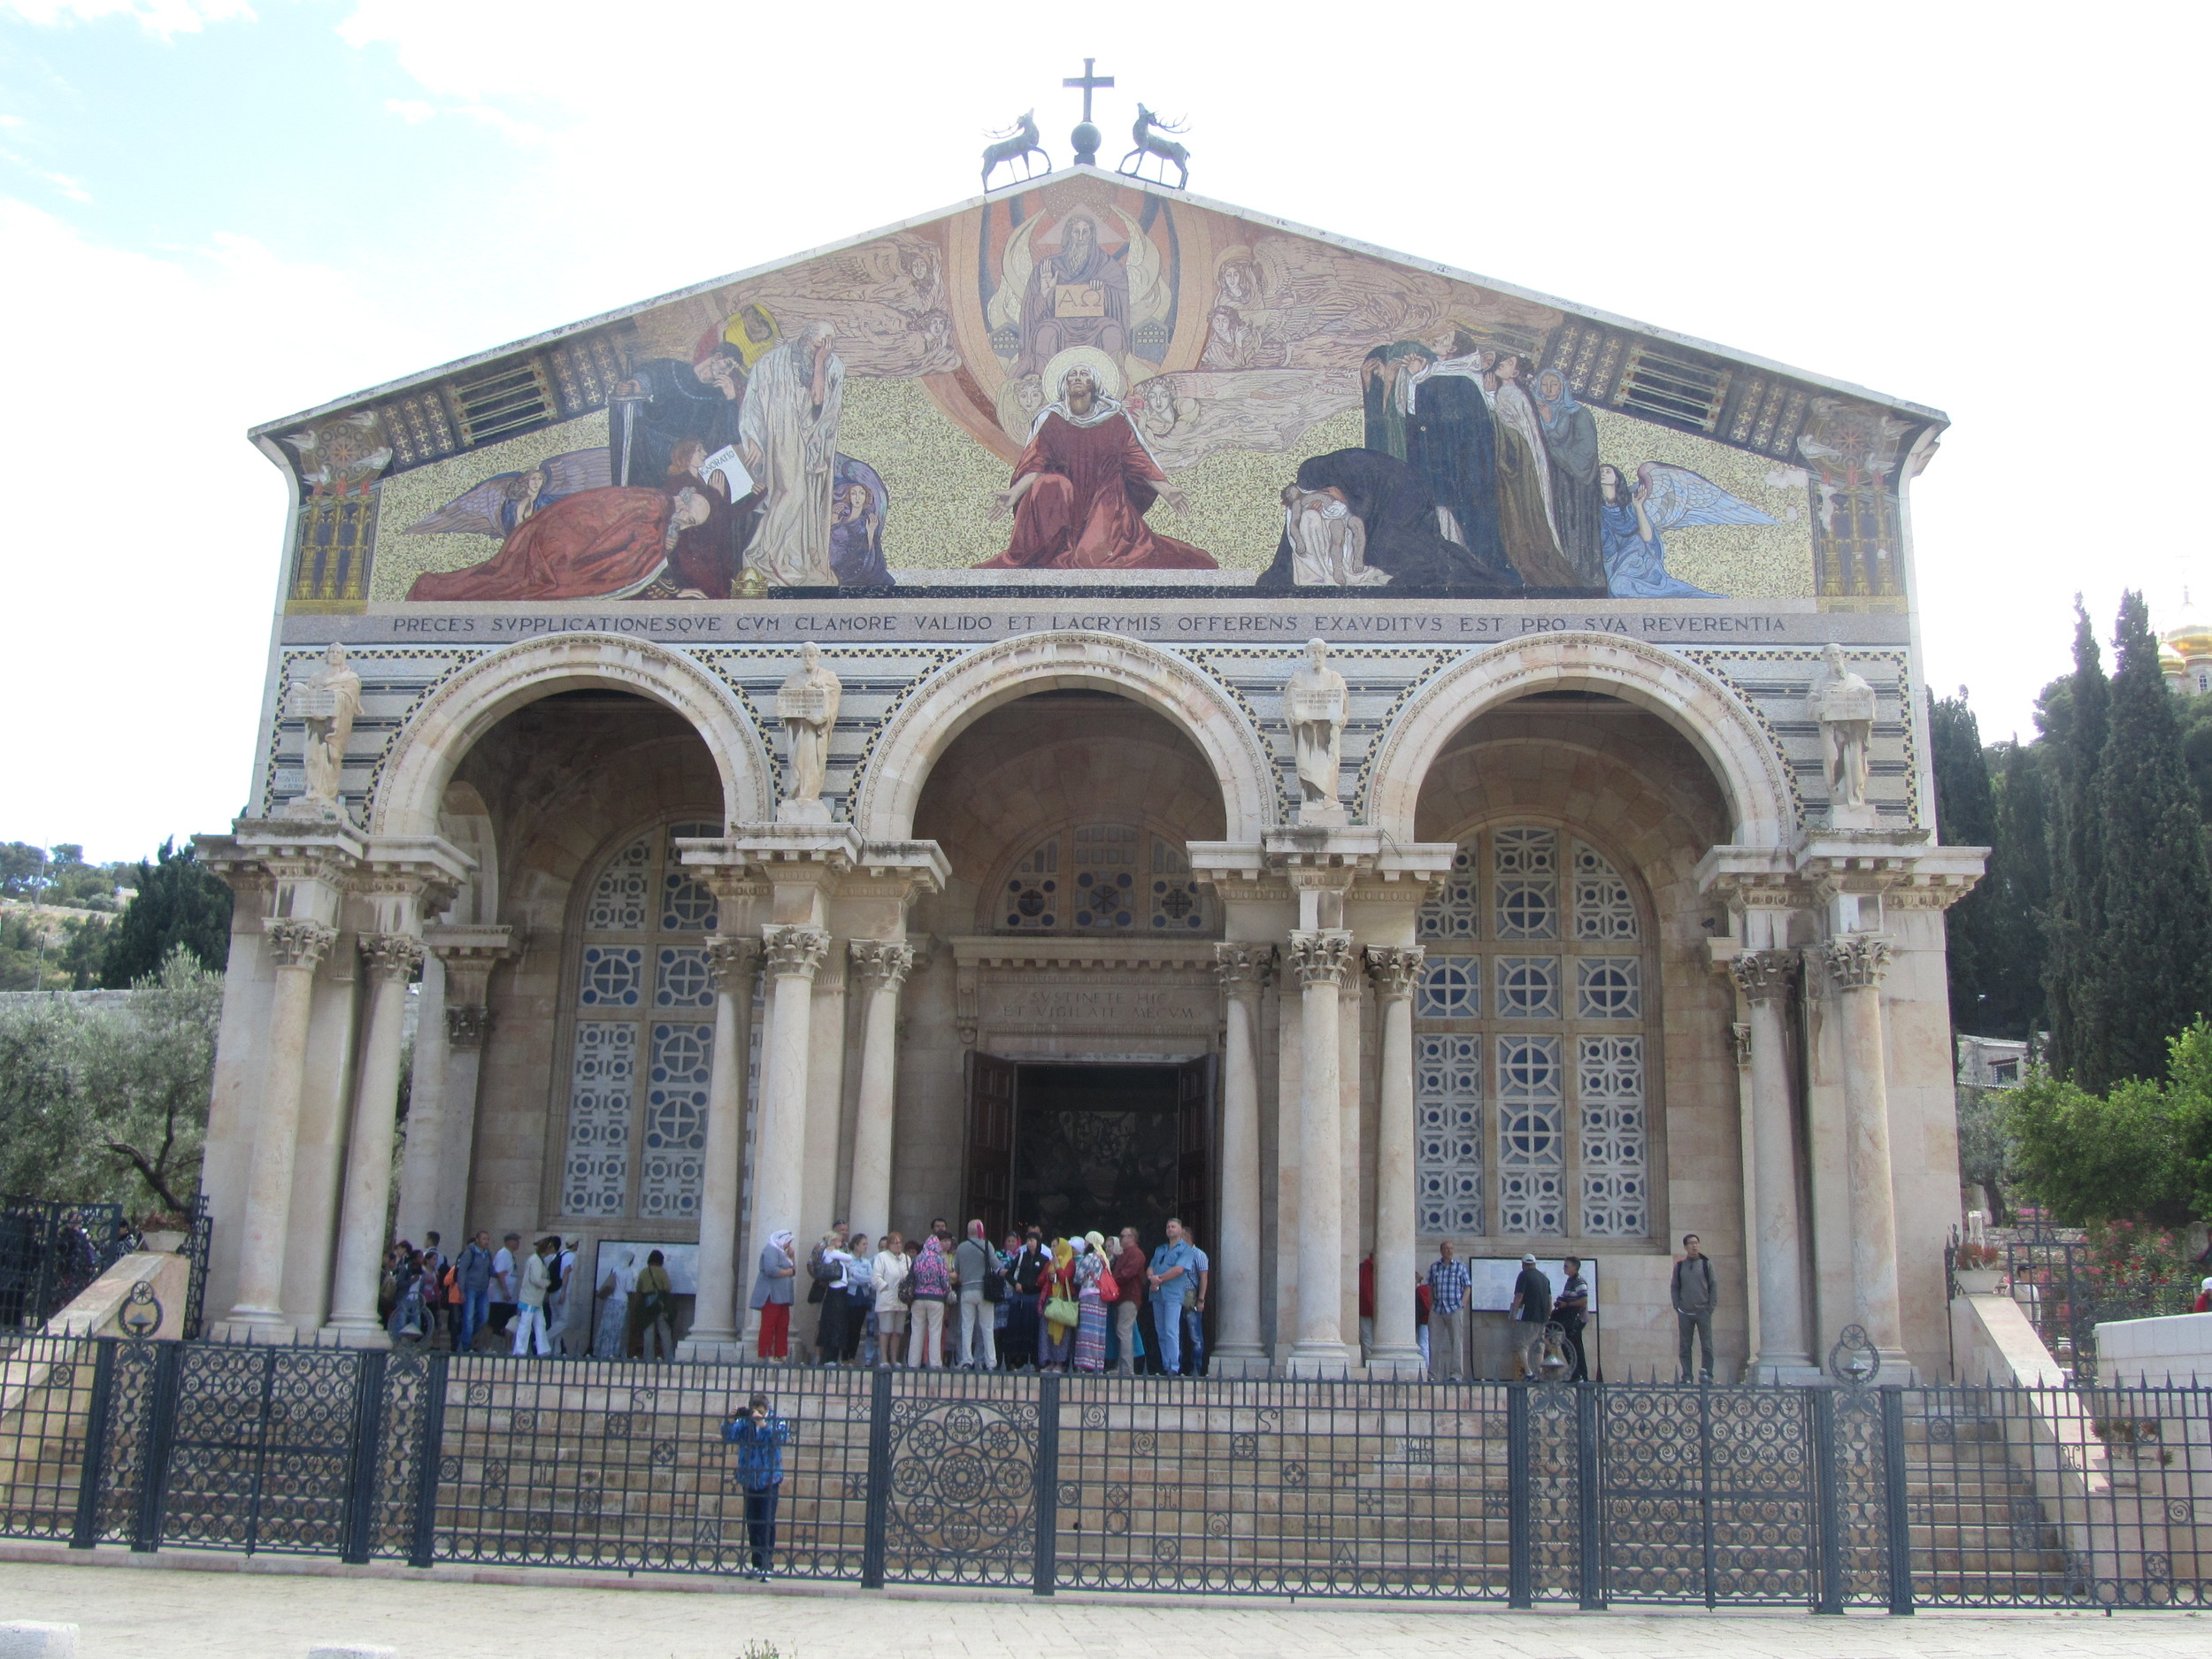 The Church of All Nations, built over the traditional site of Jesus' prayer at Gethsemane